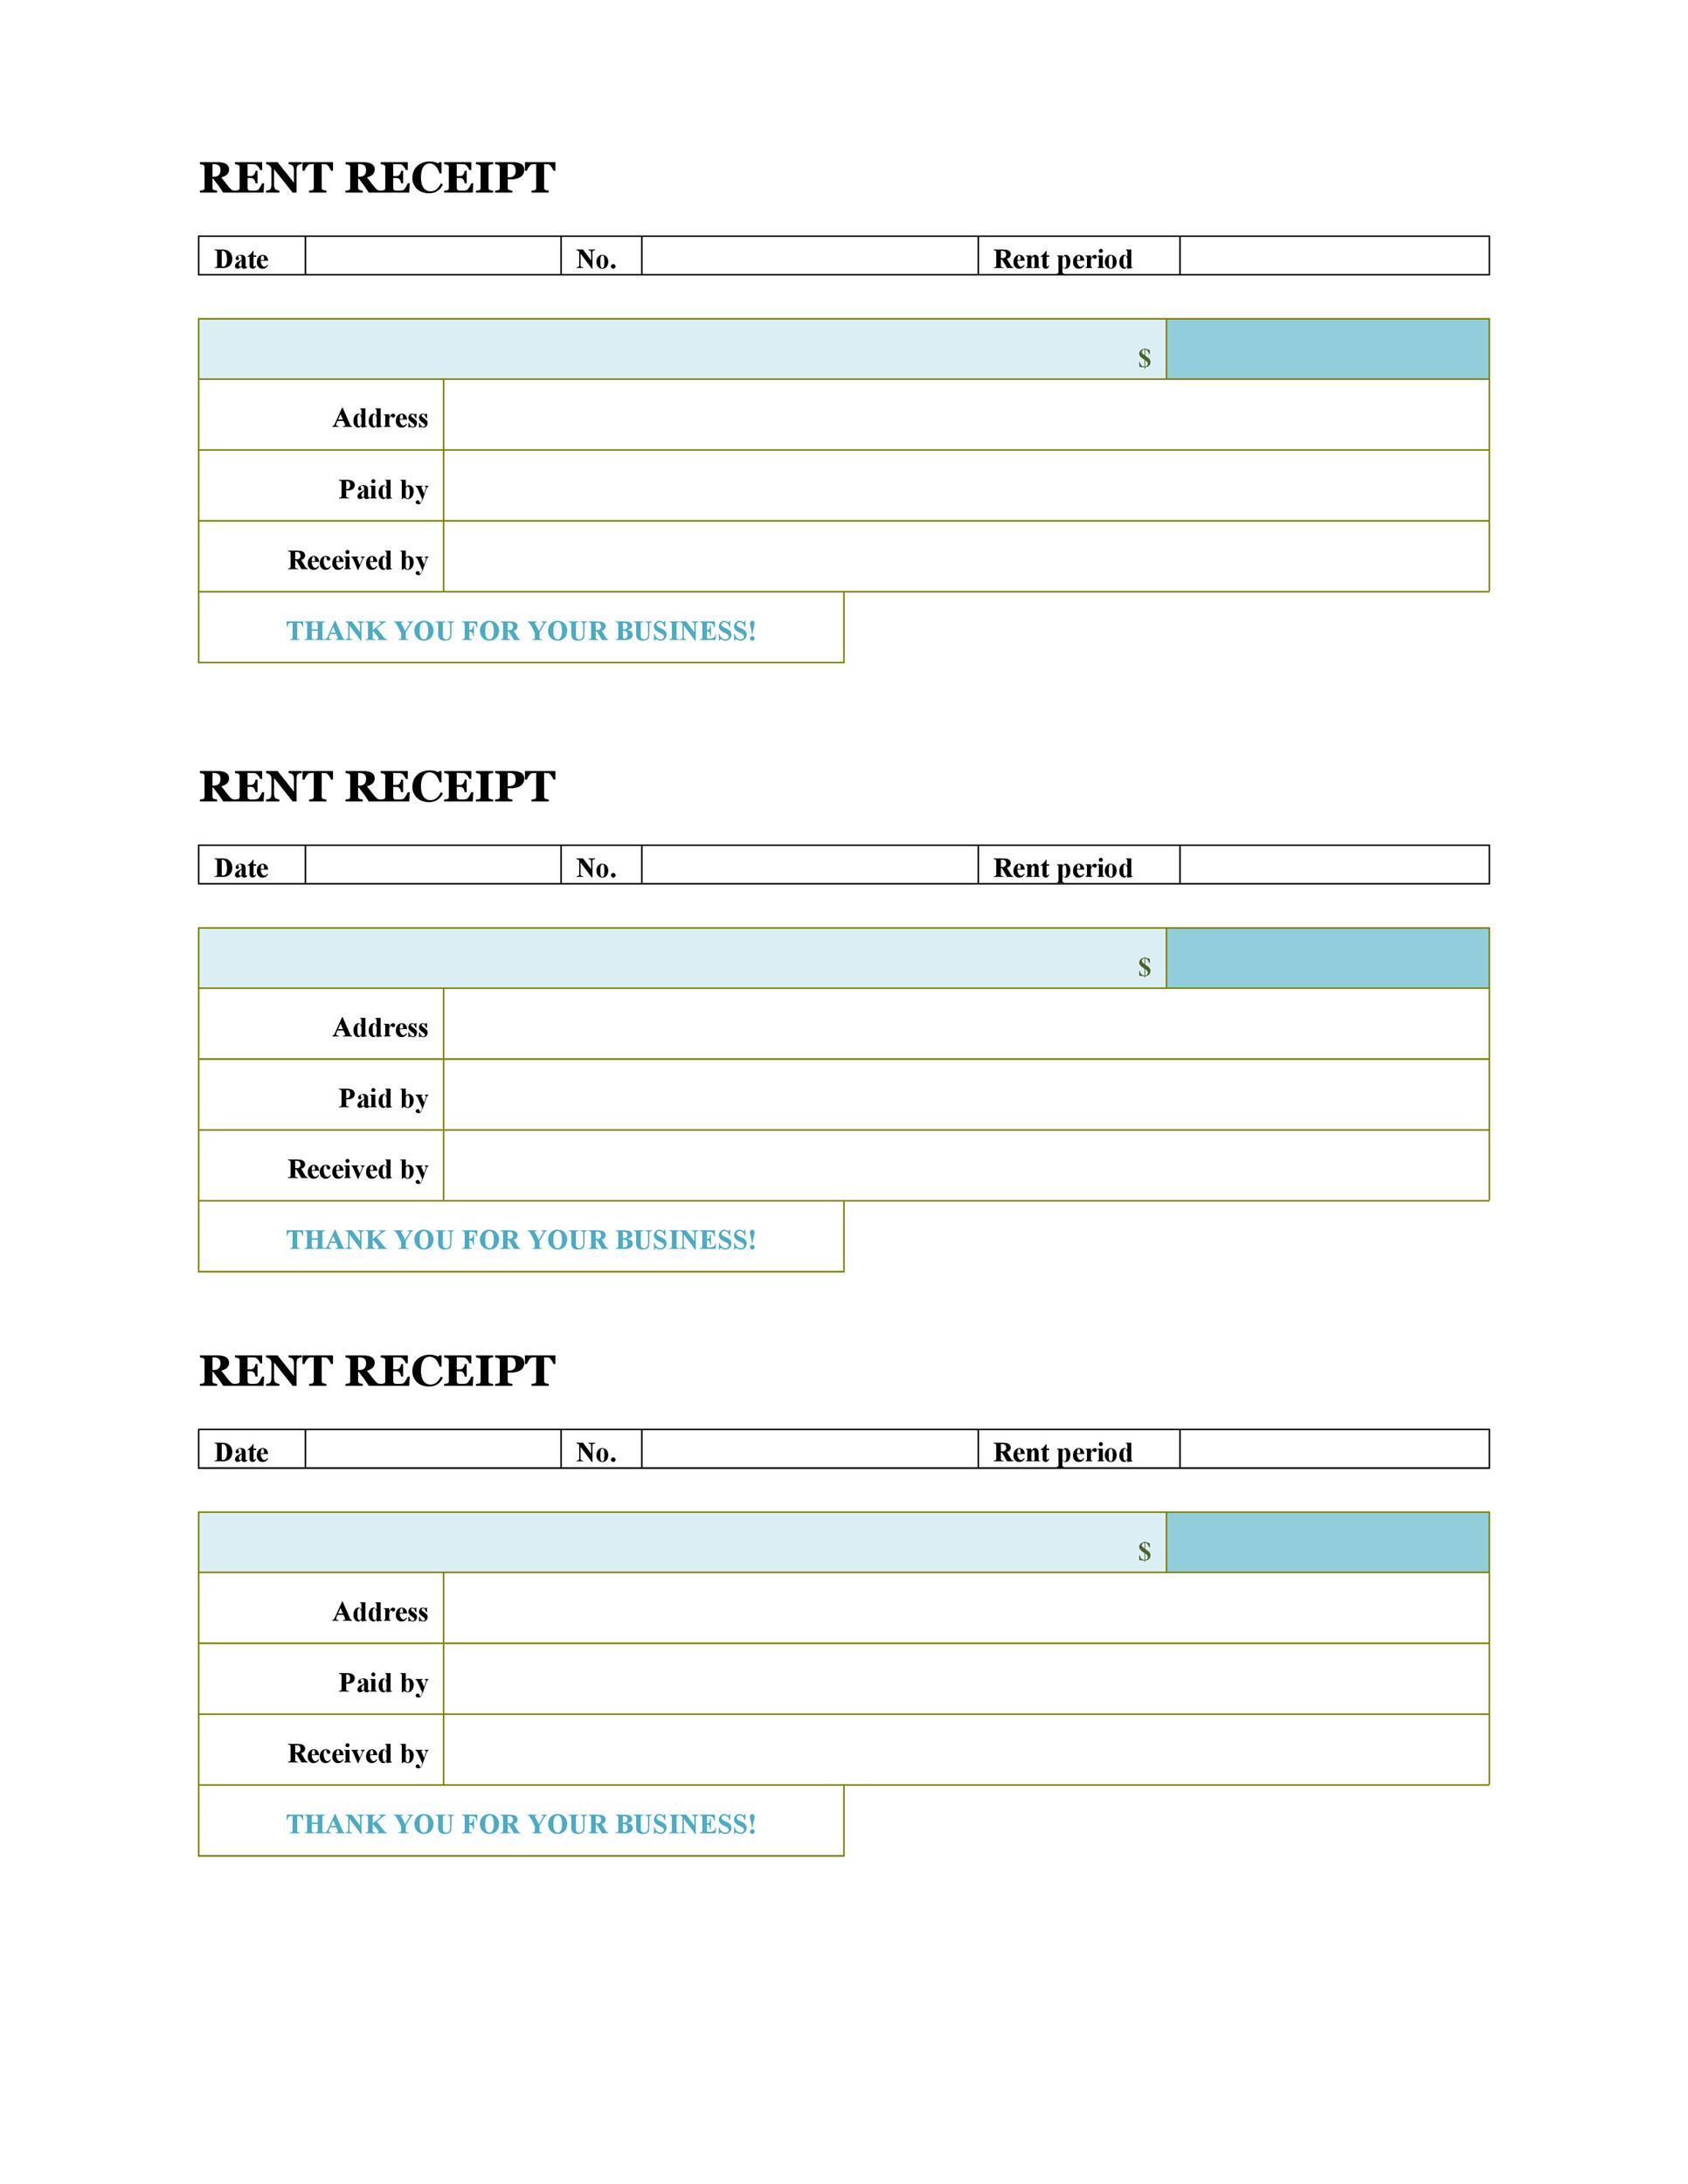 rent receipt example – Rent Recipt